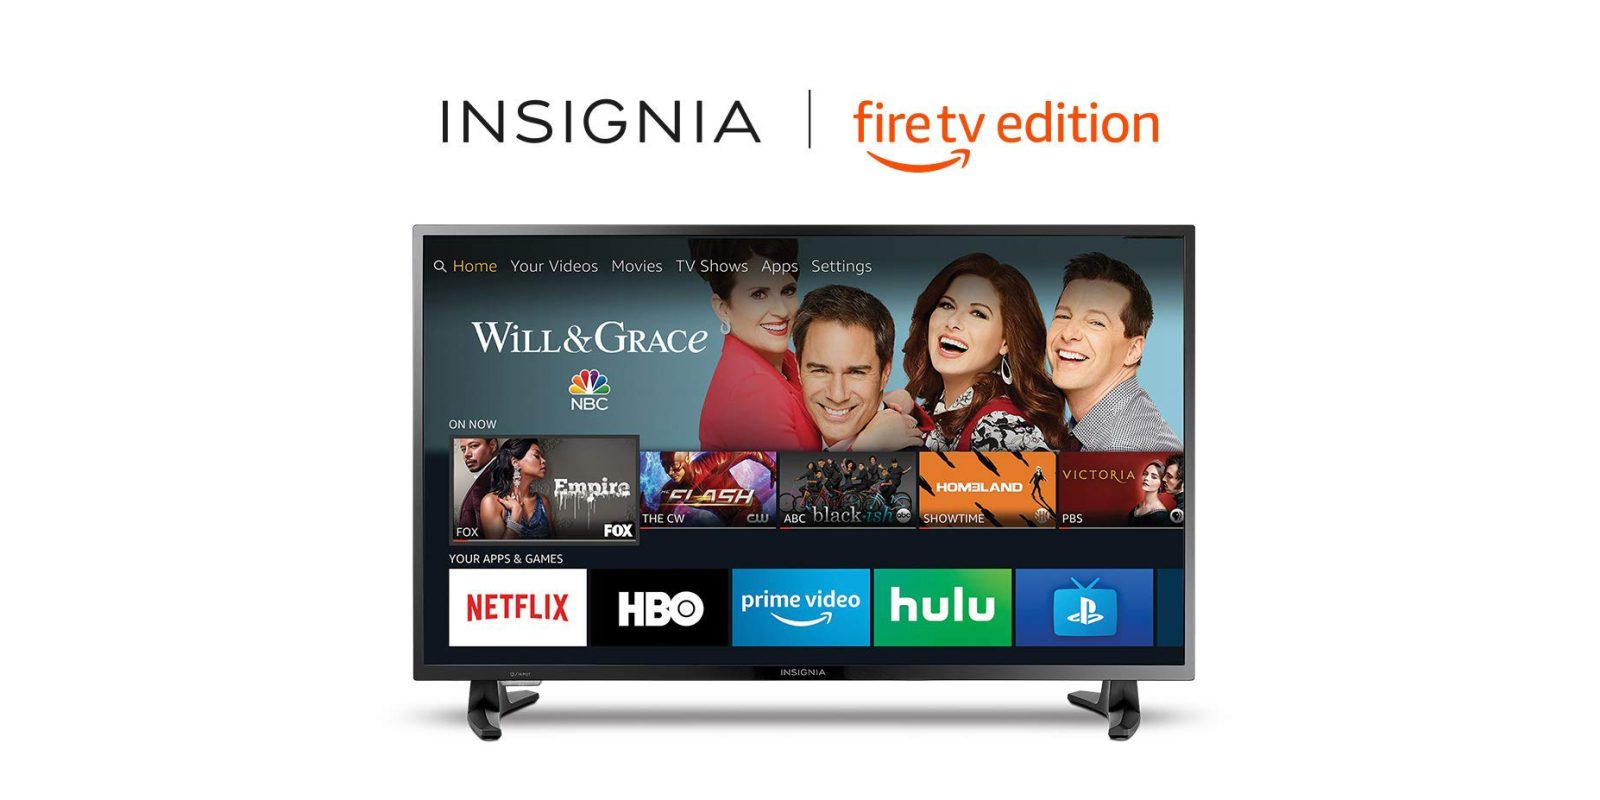 Insignia's 55-inch Fire TV Edition includes 4K HDR + Echo Dot for $300, more